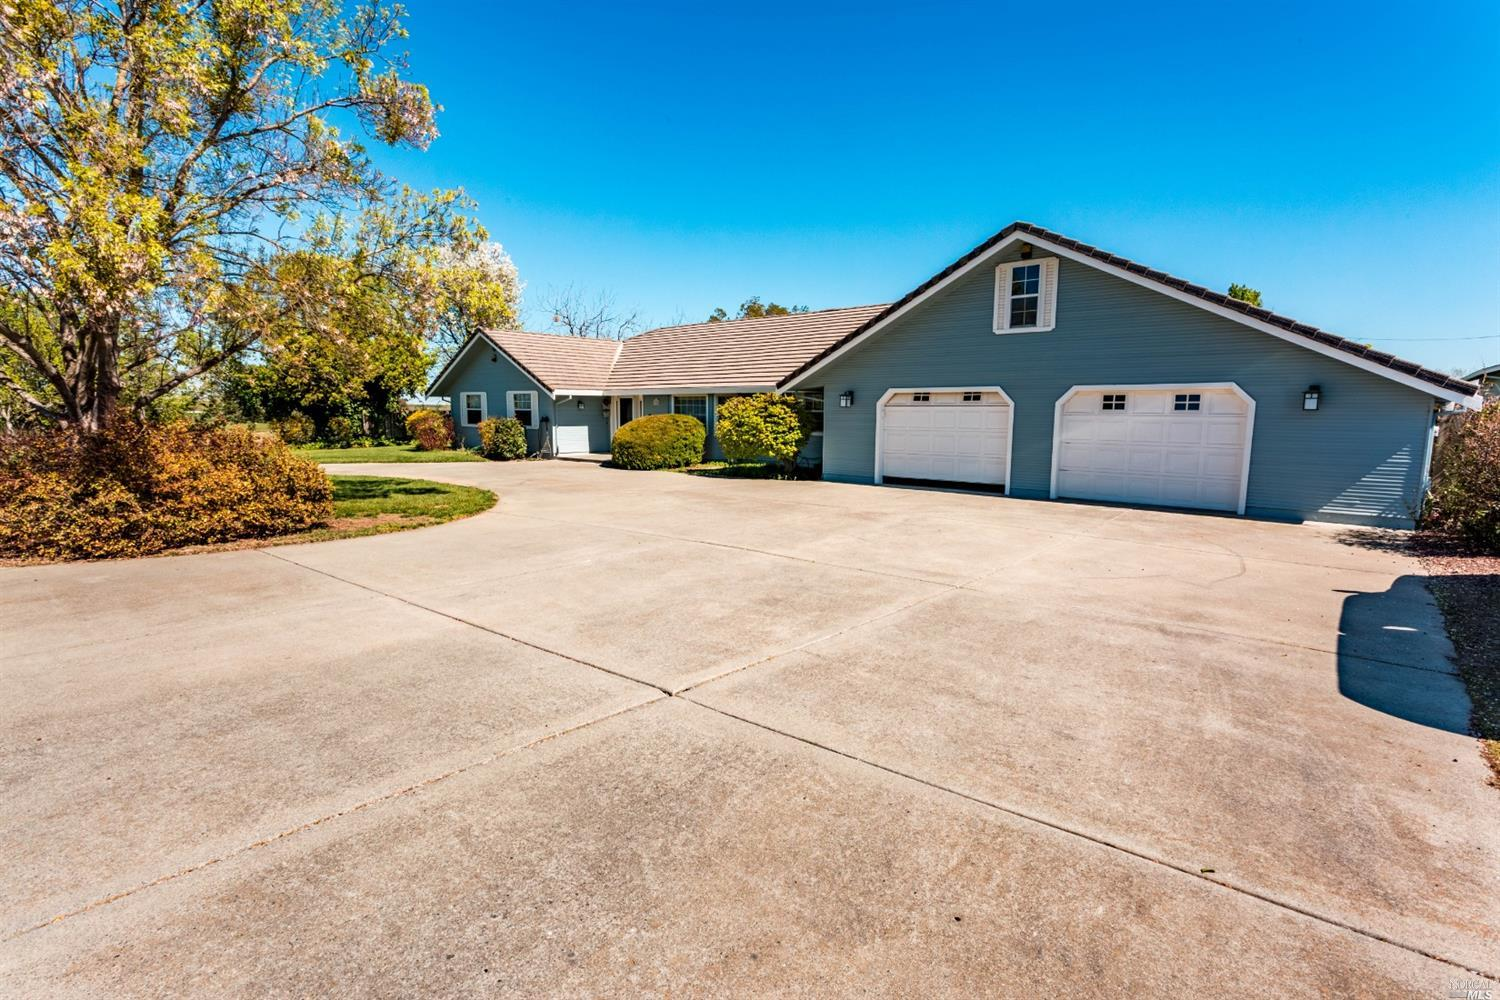 Photo of 7924 Charlotte Lane, Vacaville, CA 95688